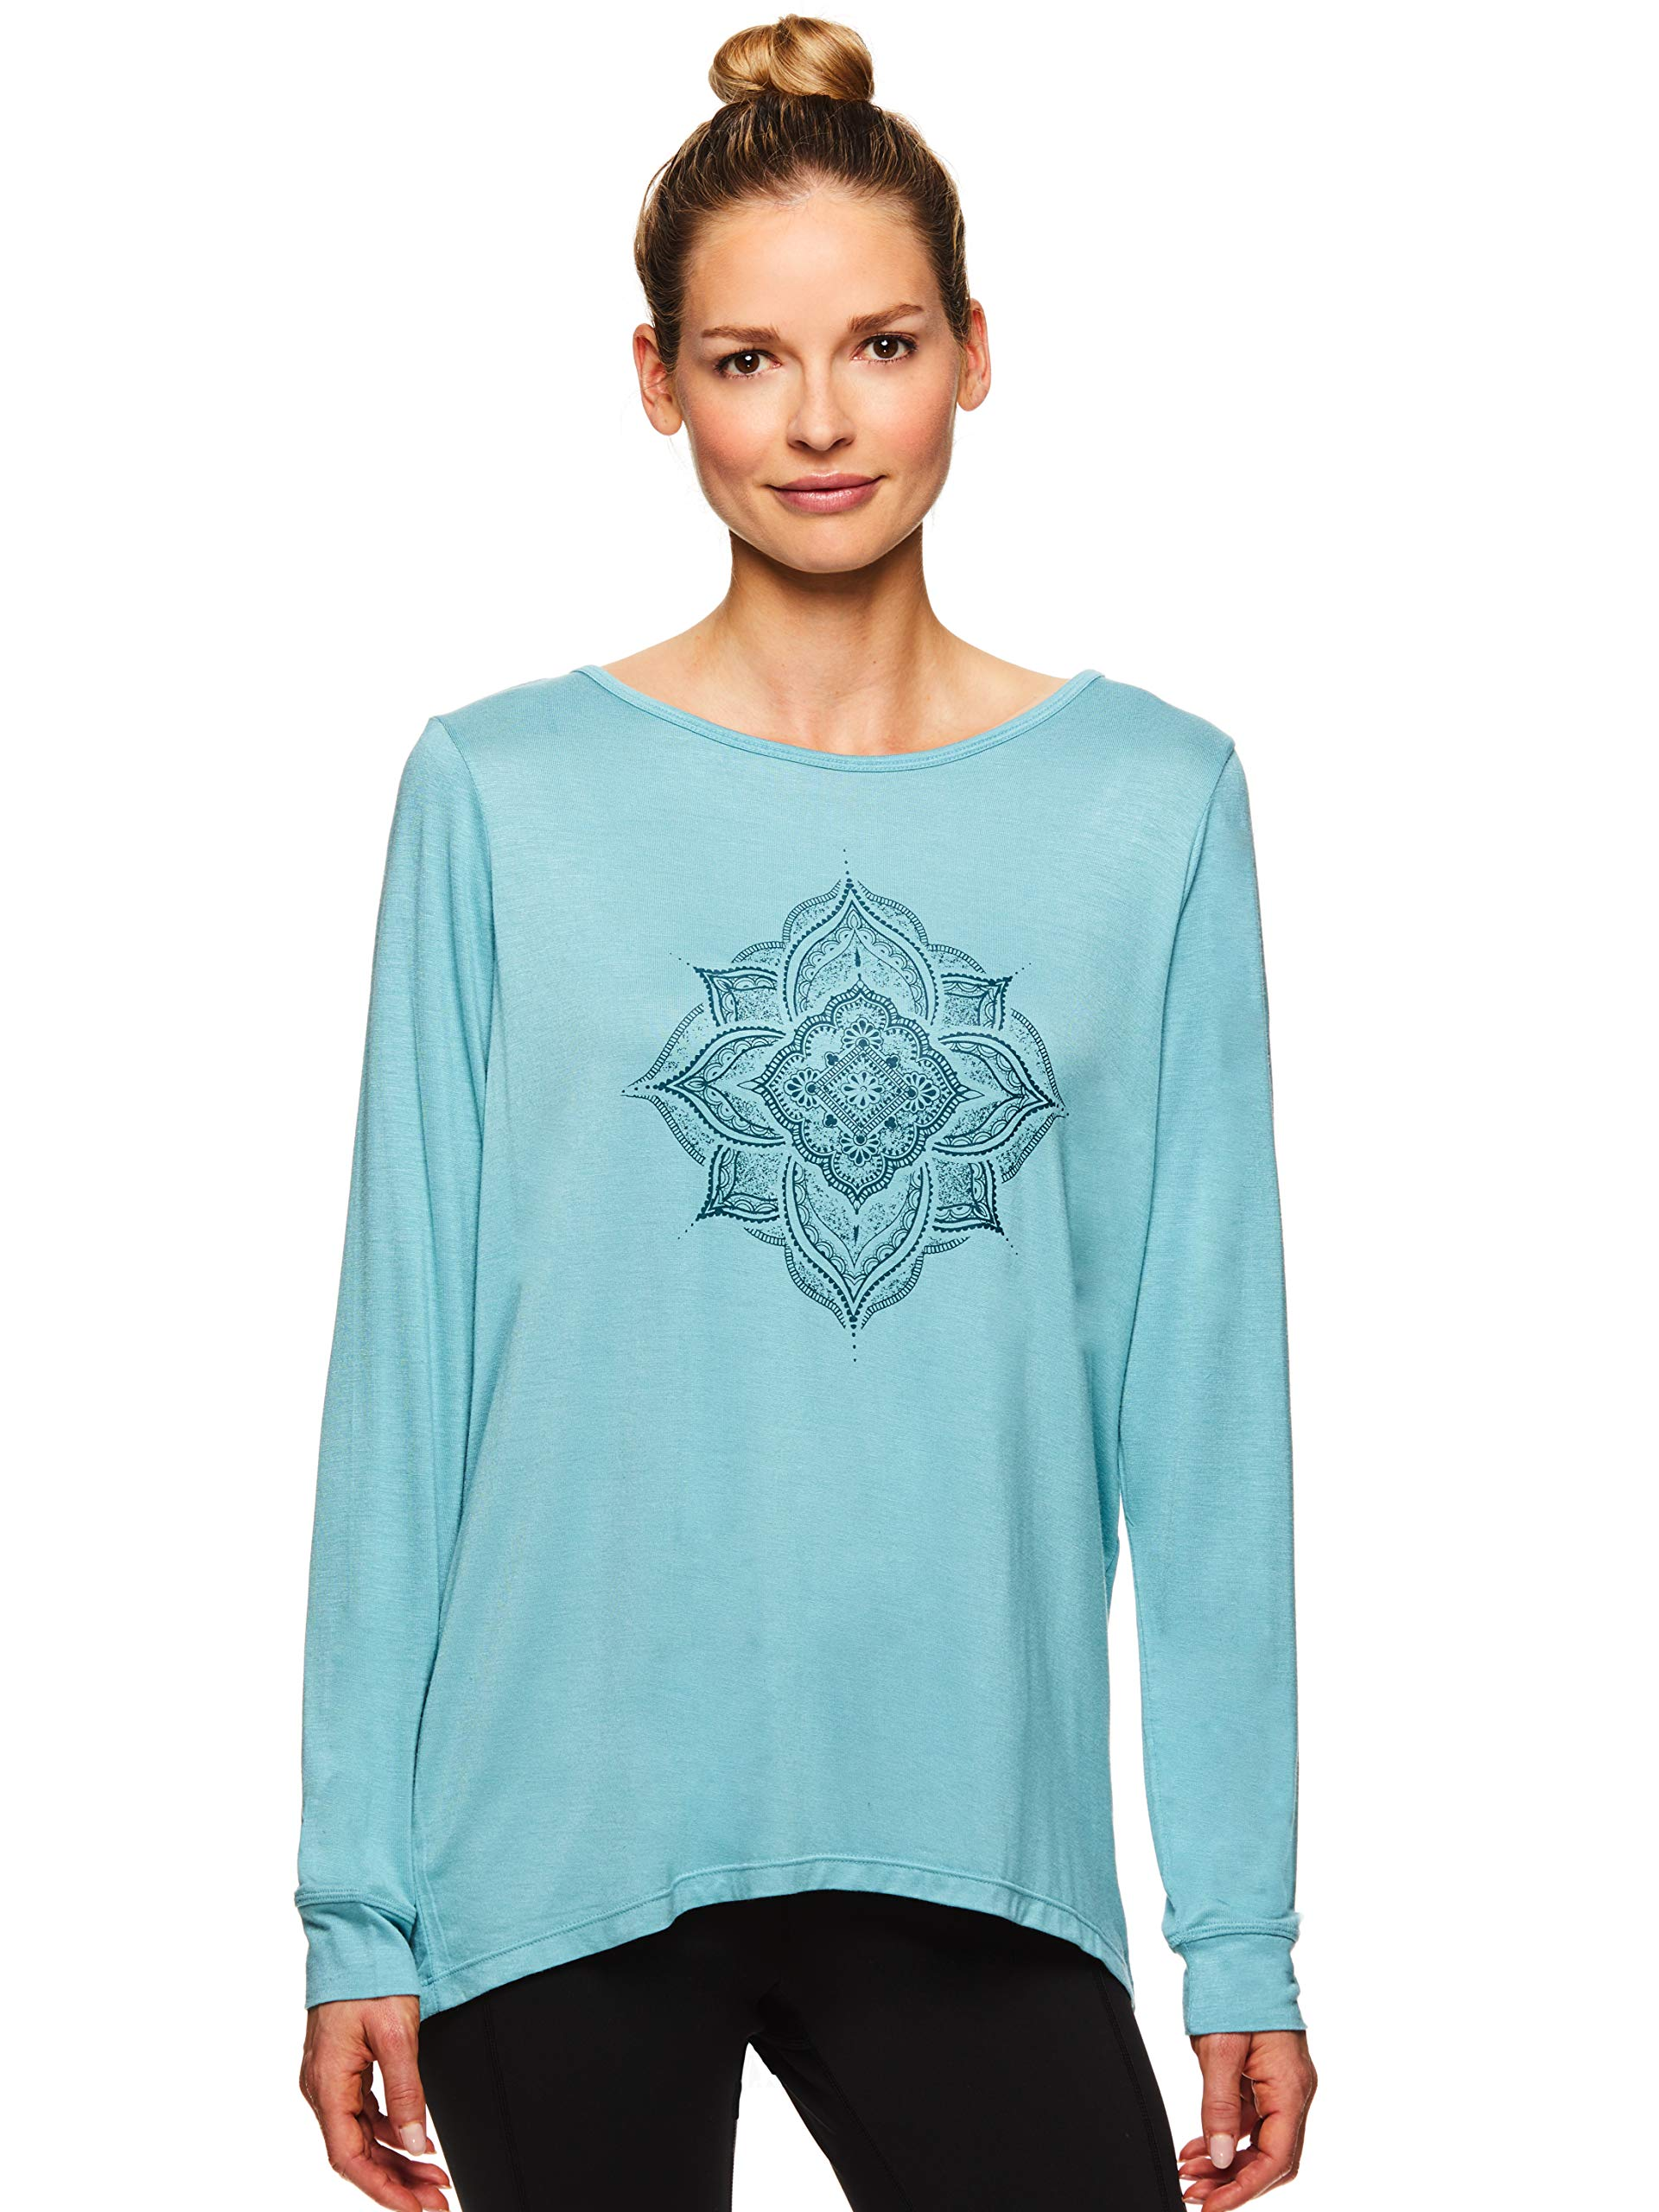 Gaiam Women's Long Sleeve Graphic Yoga T Shirt - Activewear Top w/Open Back - Hailey Cameo Blue, Medium by Gaiam